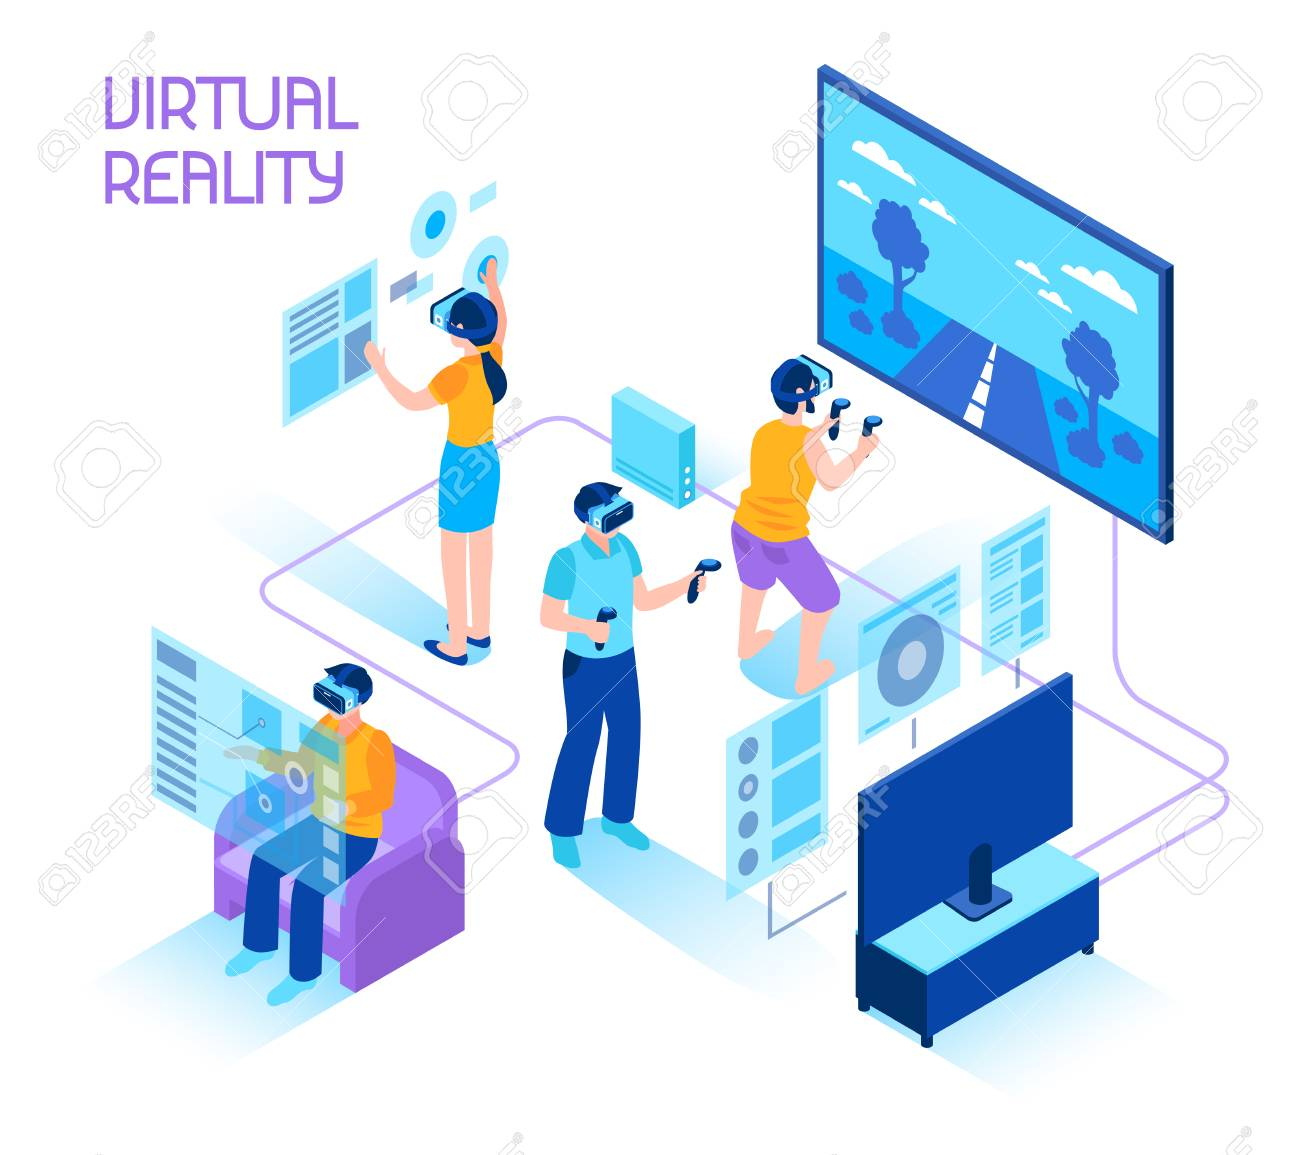 Virtual reality isometric composition with people in headsets immersing in virtual reality world holding motion controllers vector illustration. - 96782093